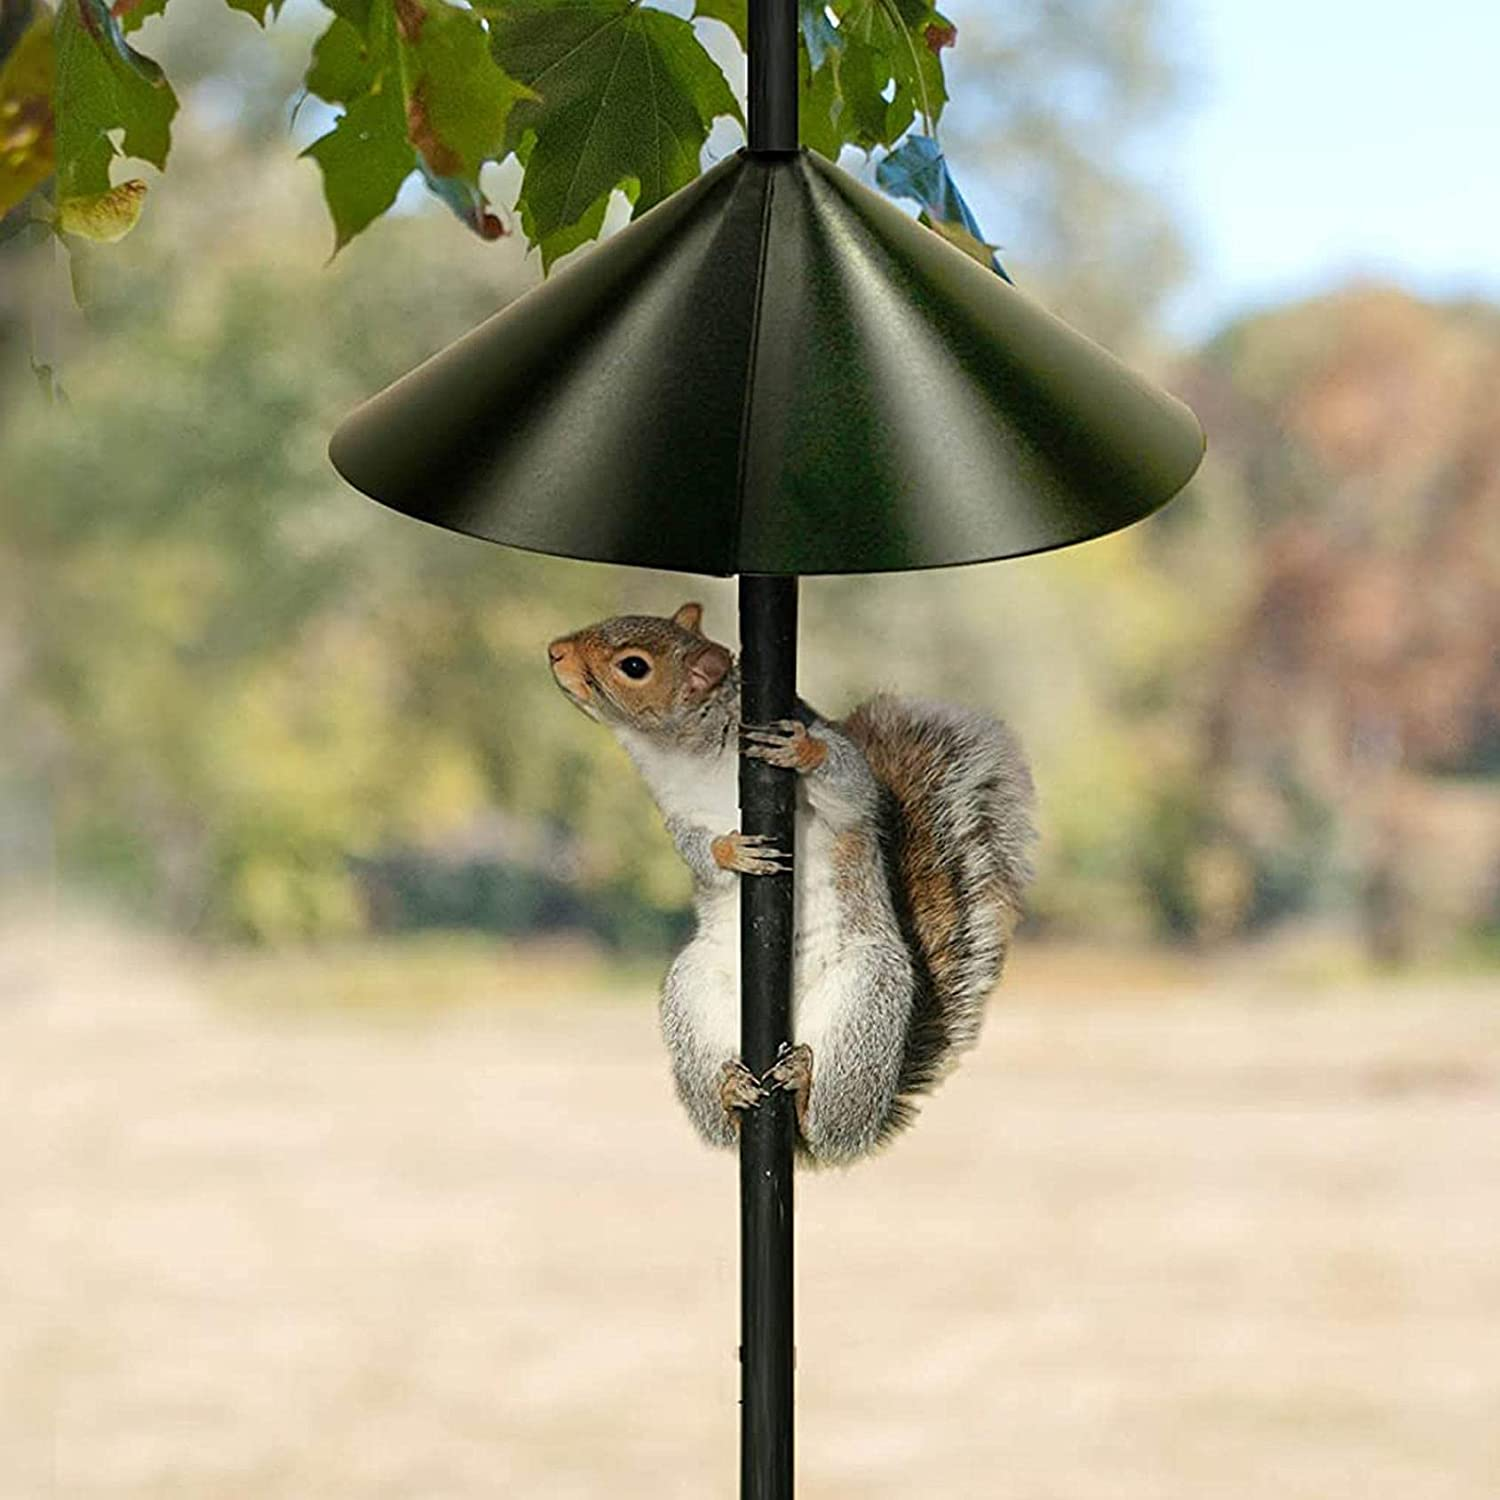 Outdoor Squirrel Proof Baffle Feeder High quality new Bird 2021new shipping free shipping